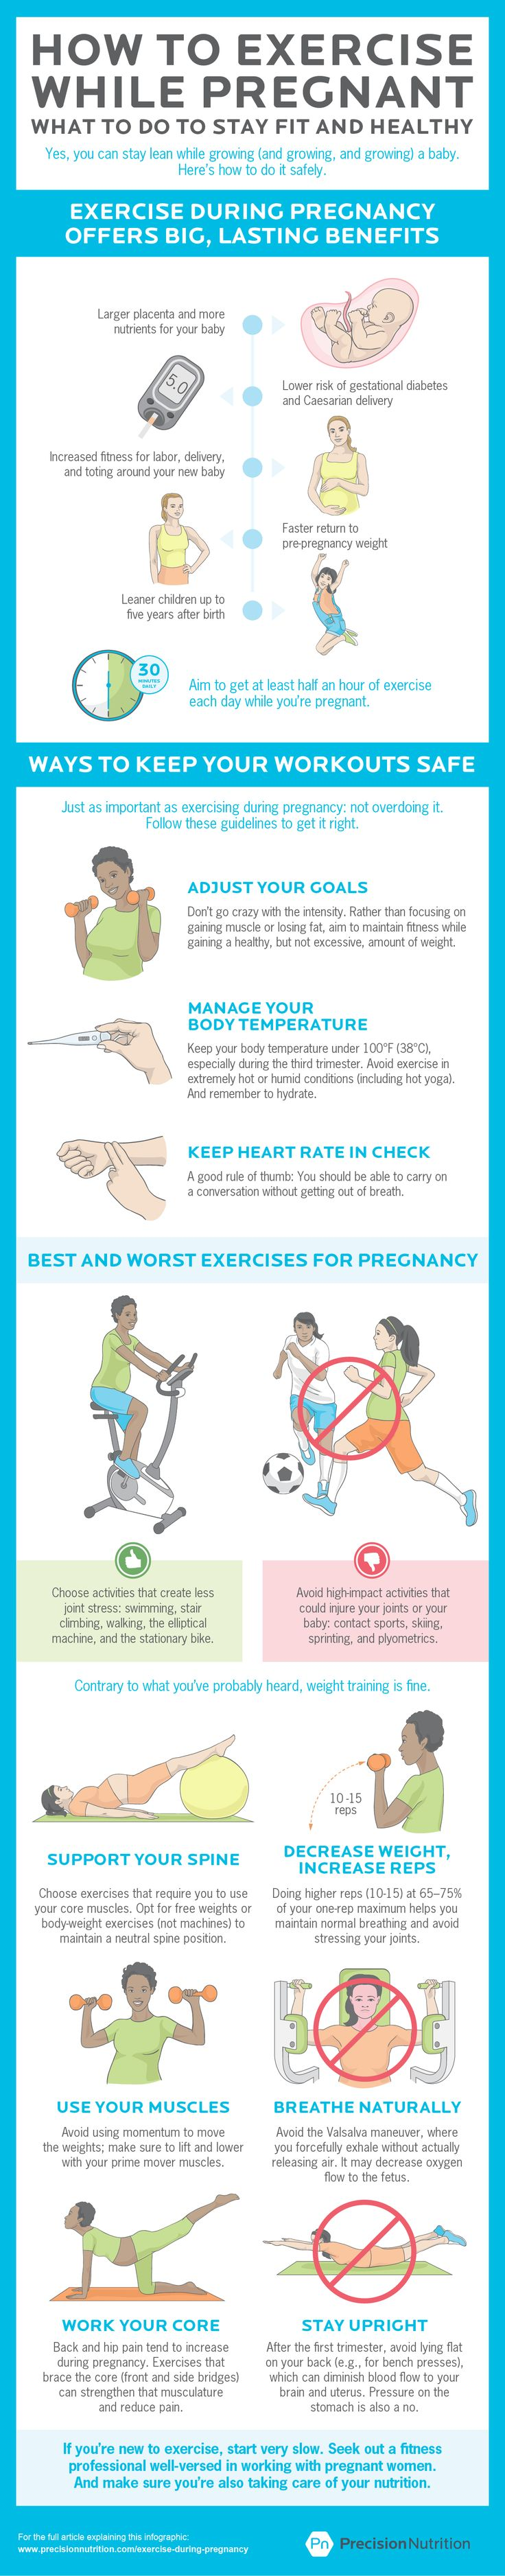 Exercise during pregnancy: The safest, most effective ways to stay fit and healthy: http://www.precisionnutrition.com/exercise-during-pregnancy-infographic